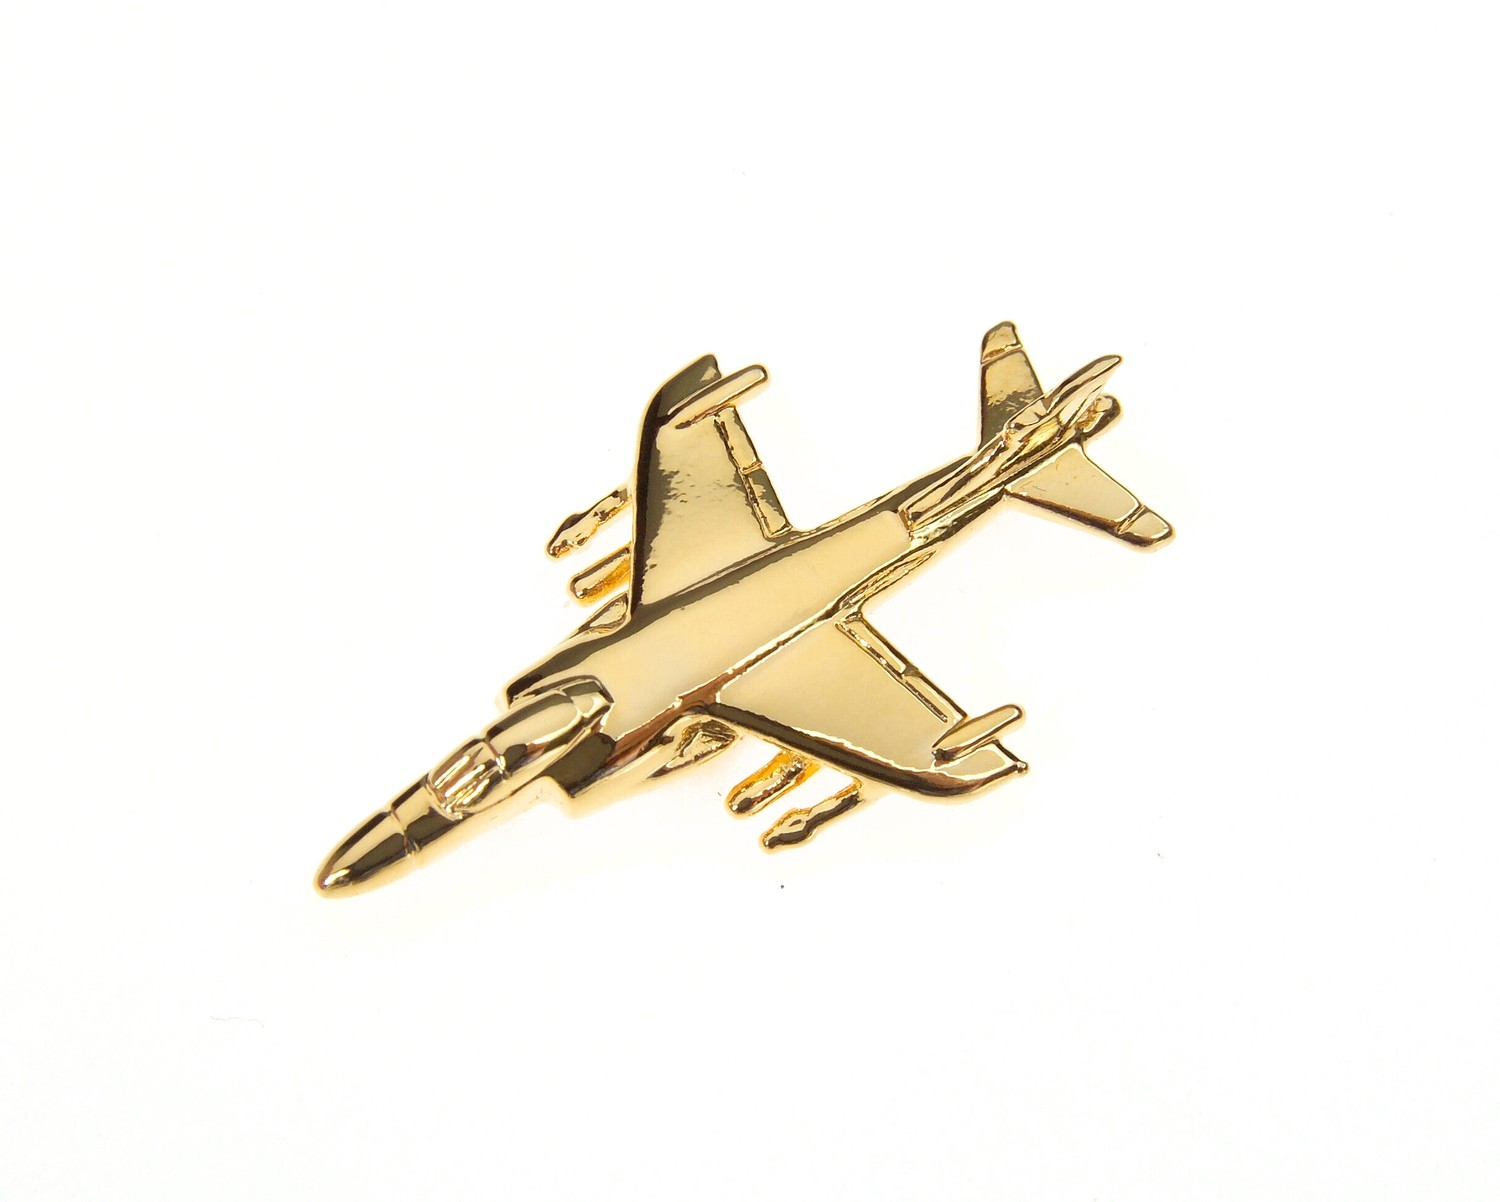 Sea Harrier FA-2 Gold Plated Tie / Lapel Pin